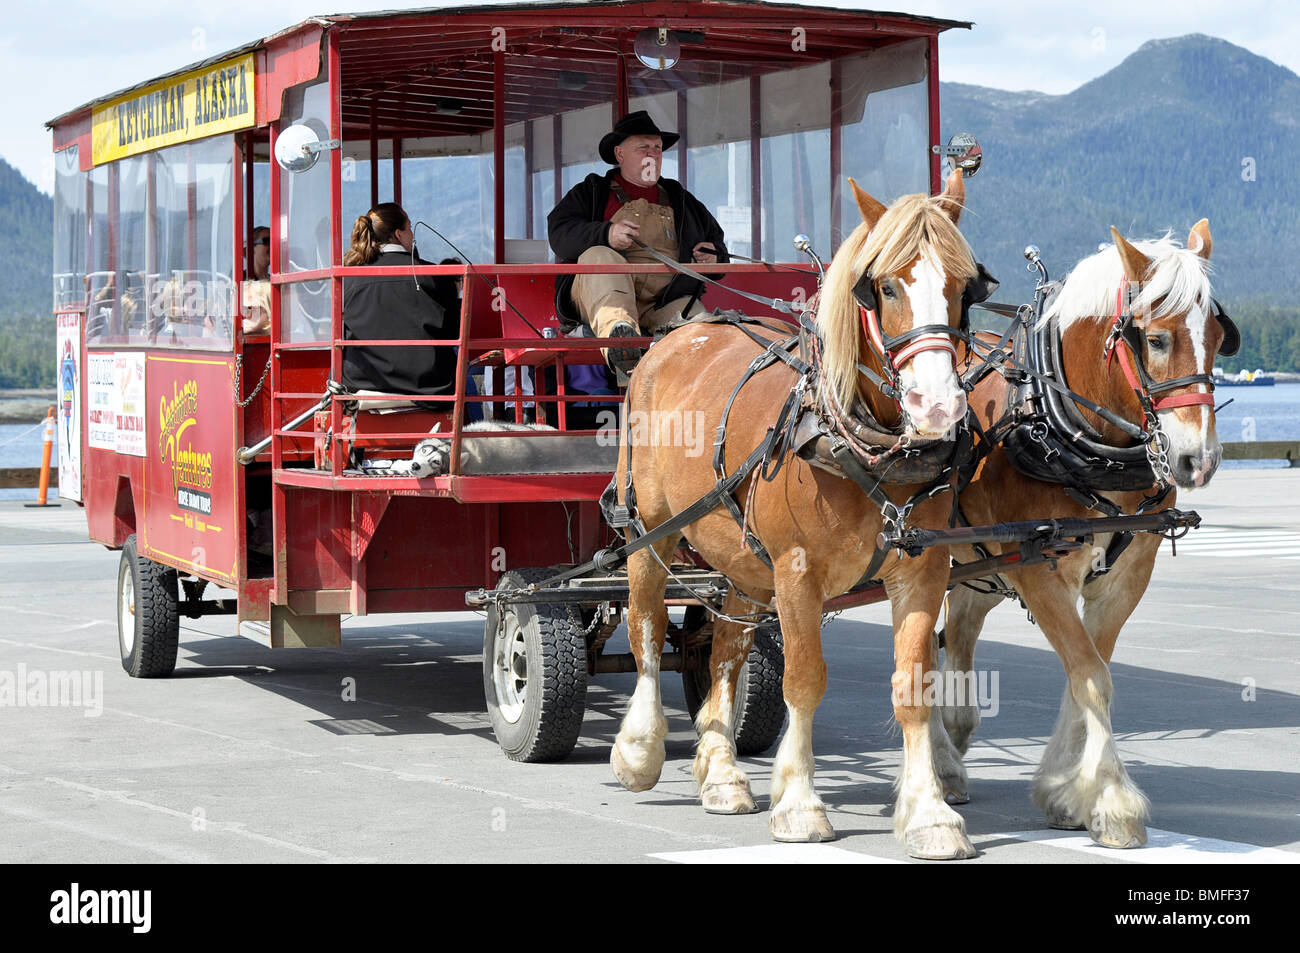 City Tours by Horse Drawn Trolley - Ketchikan, Alaska. - Stock Image